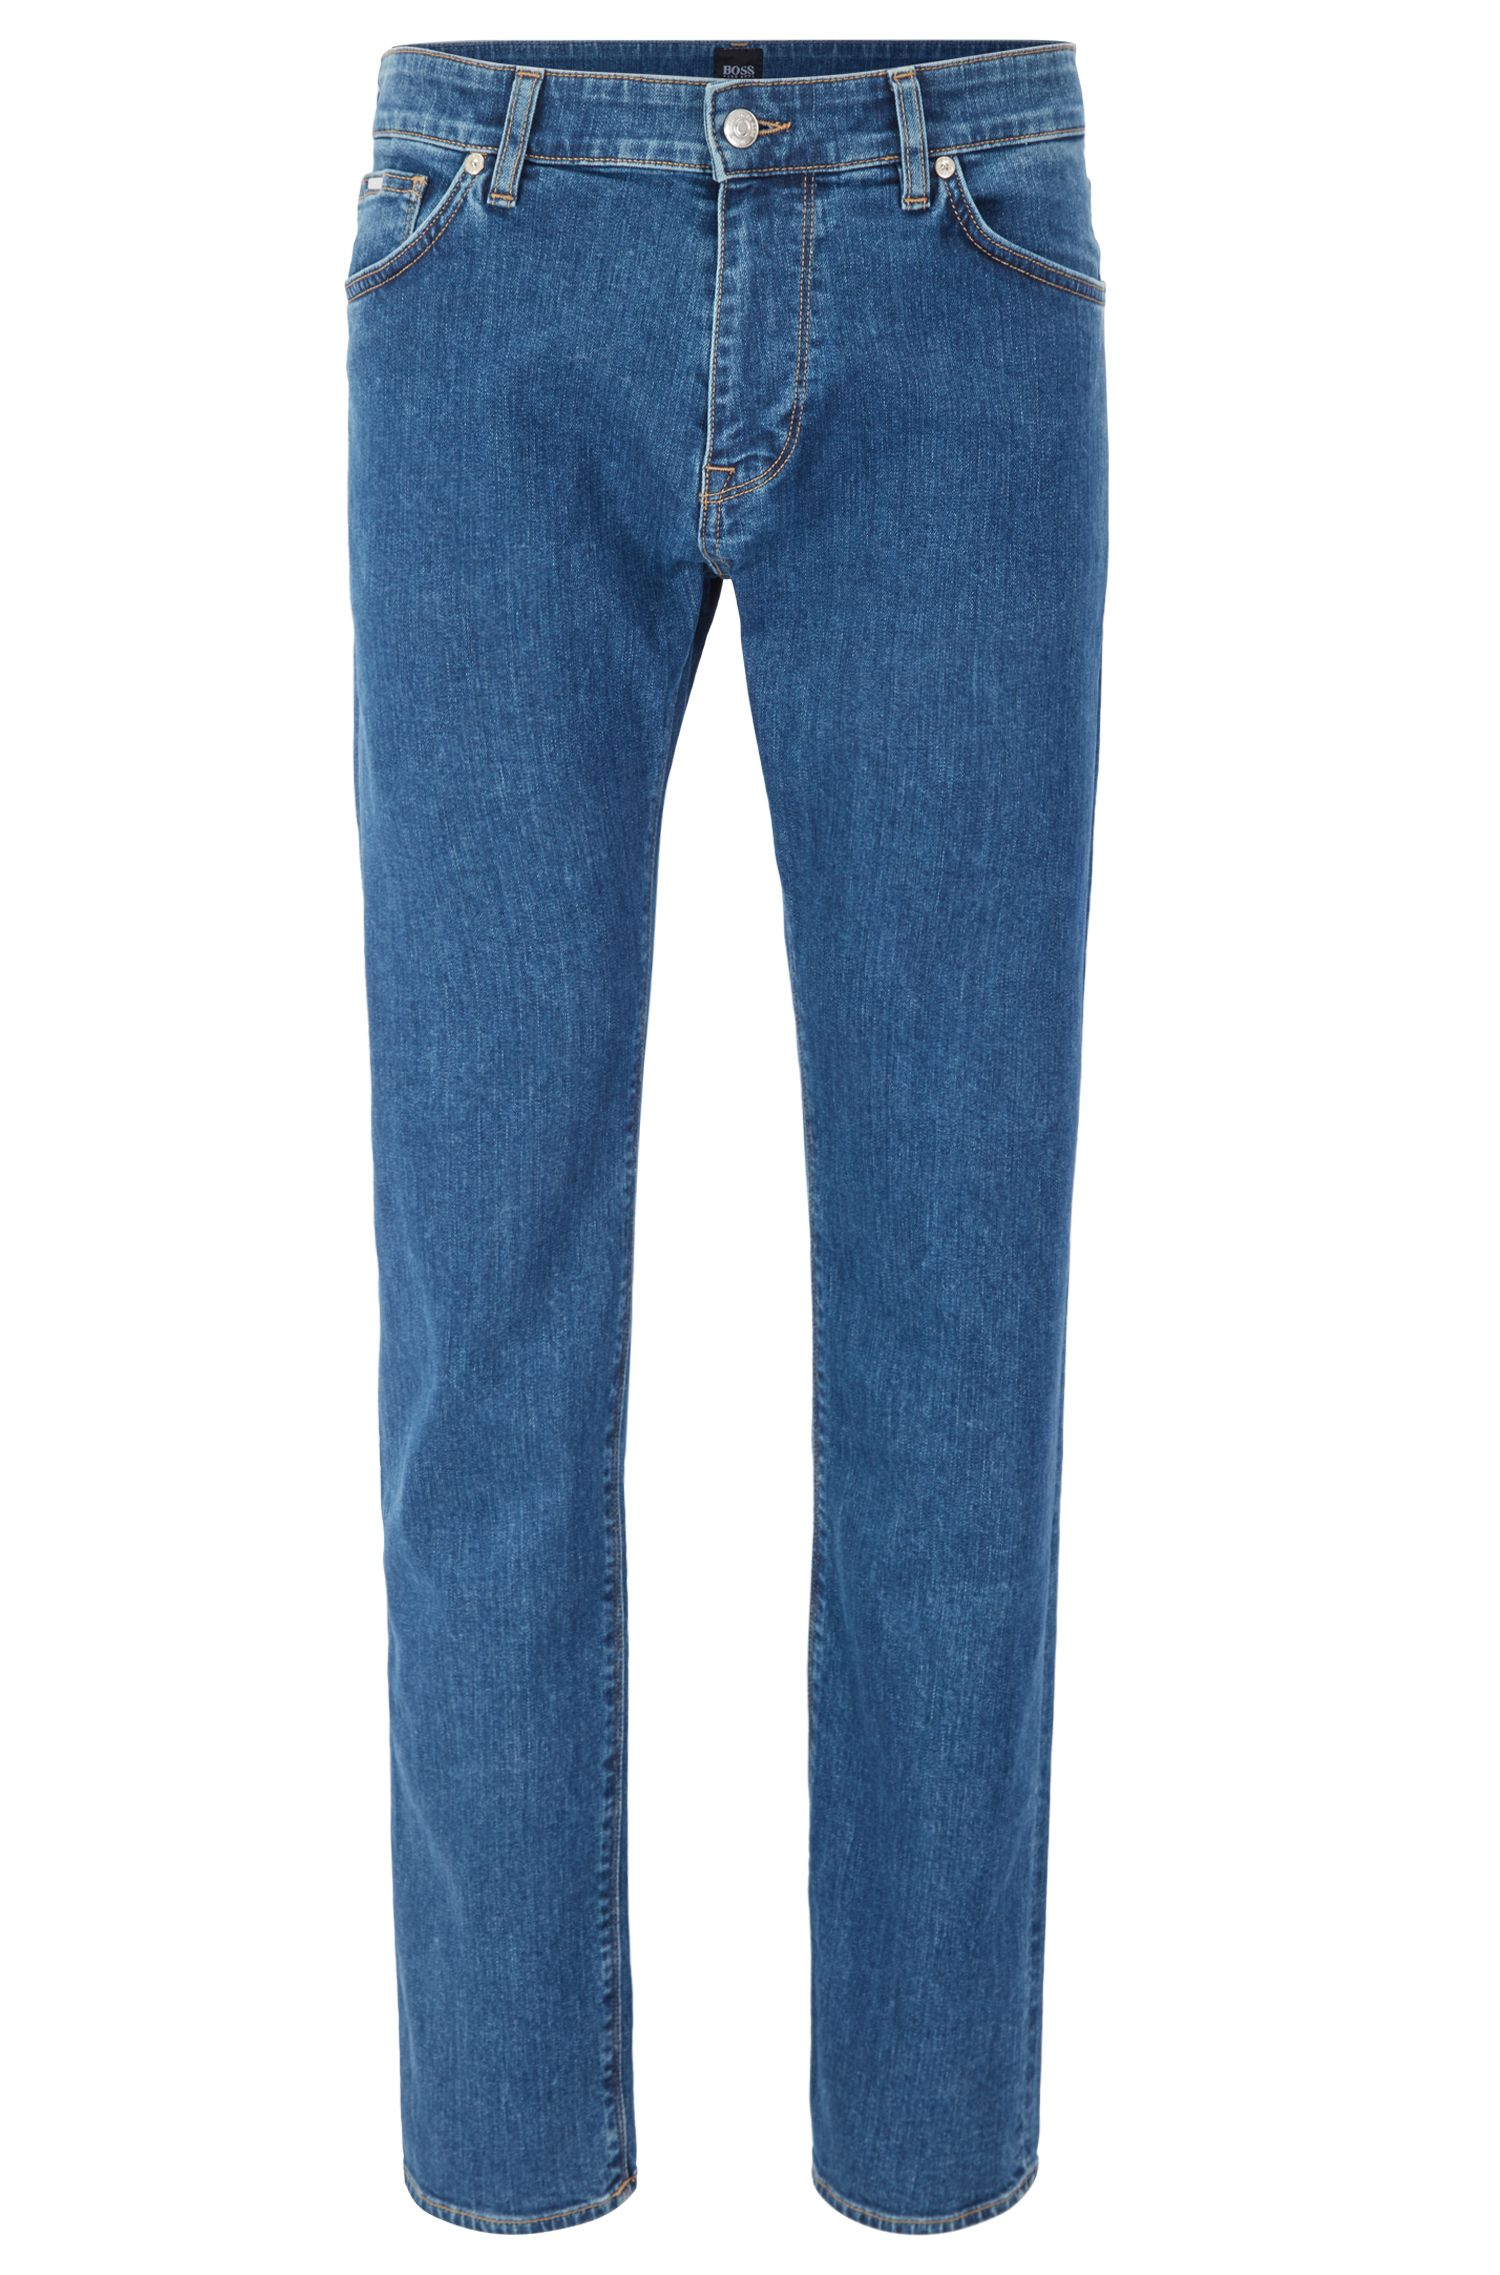 Regular-fit jeans in mid-blue stretch denim with used finish